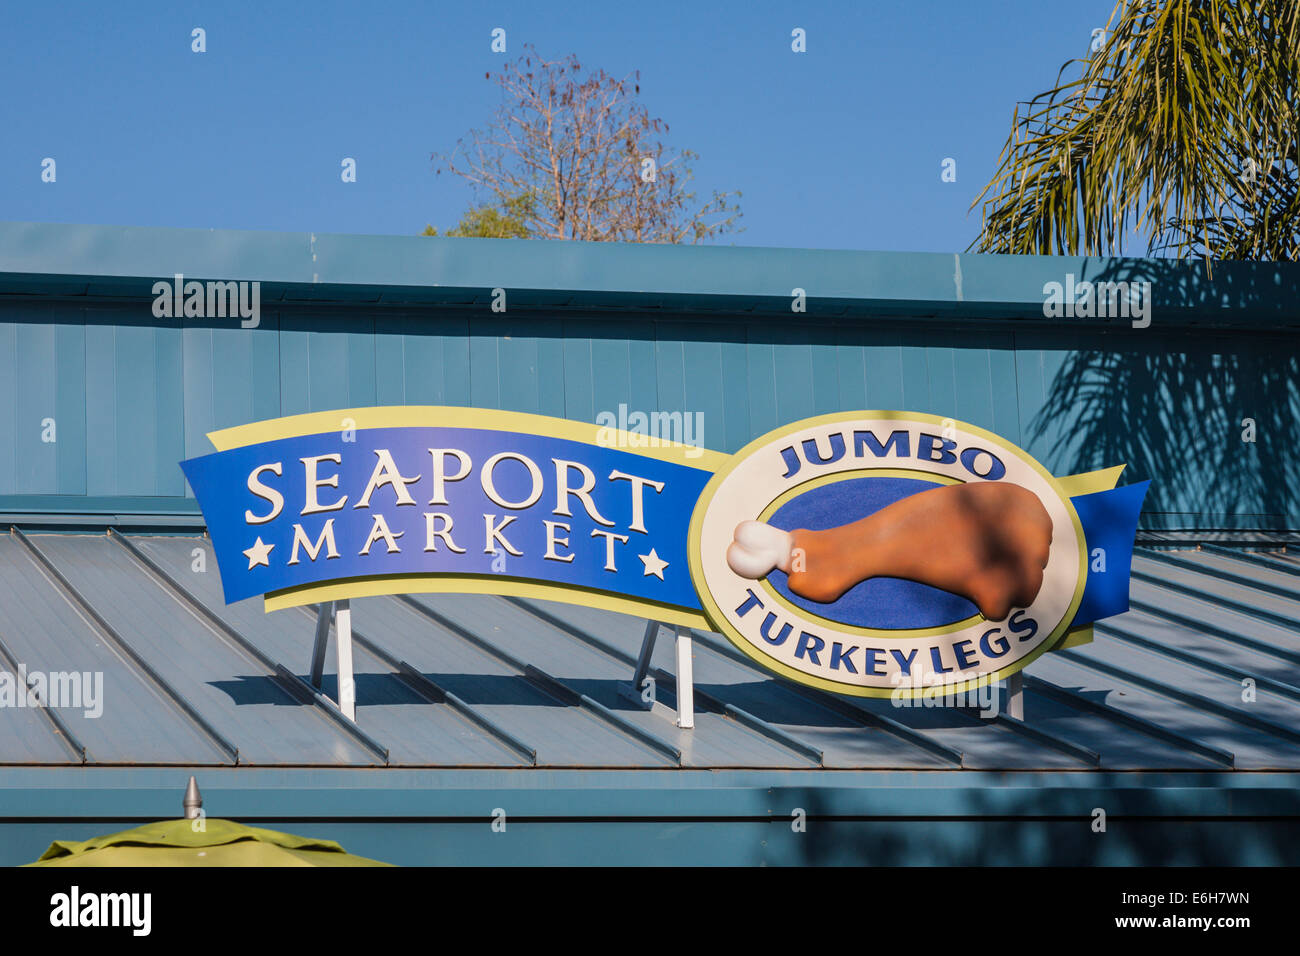 Sign for Seaport Market concession selling Jumbo Turkey Legs in Sea World, Orlando, Florida - Stock Image